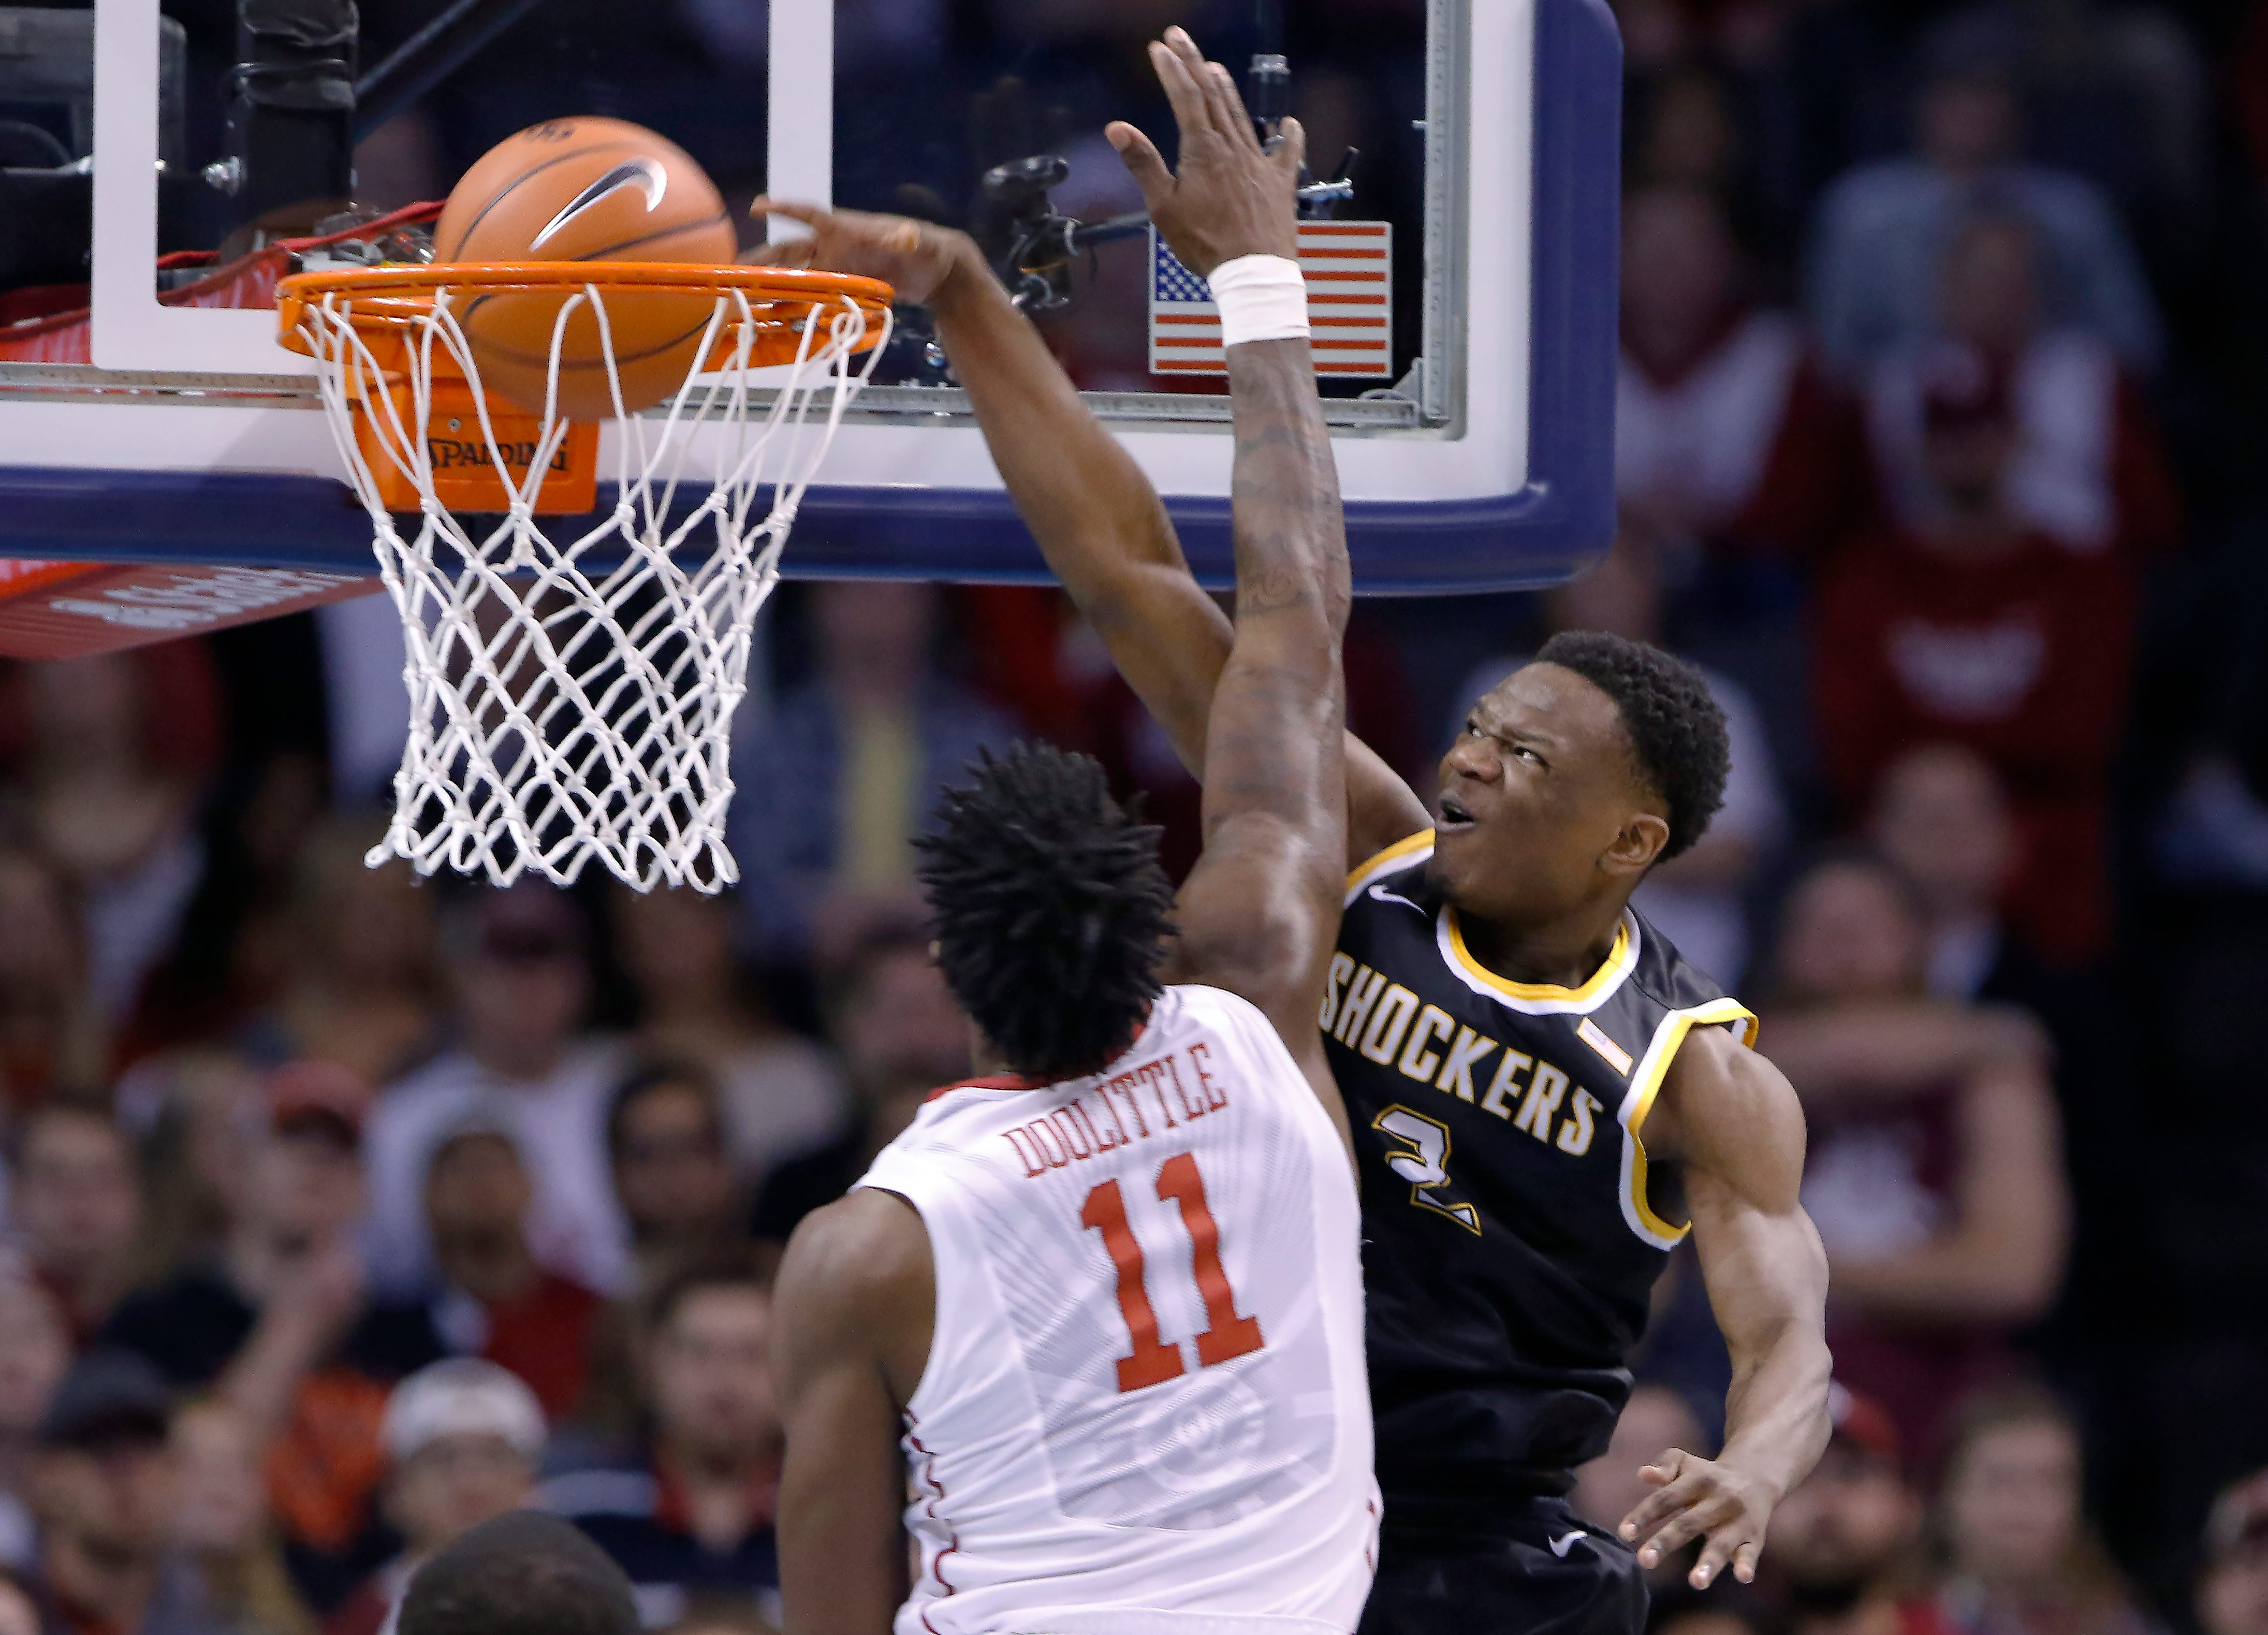 After NBA departures, Wichita State rolling and eyeing NCAAs